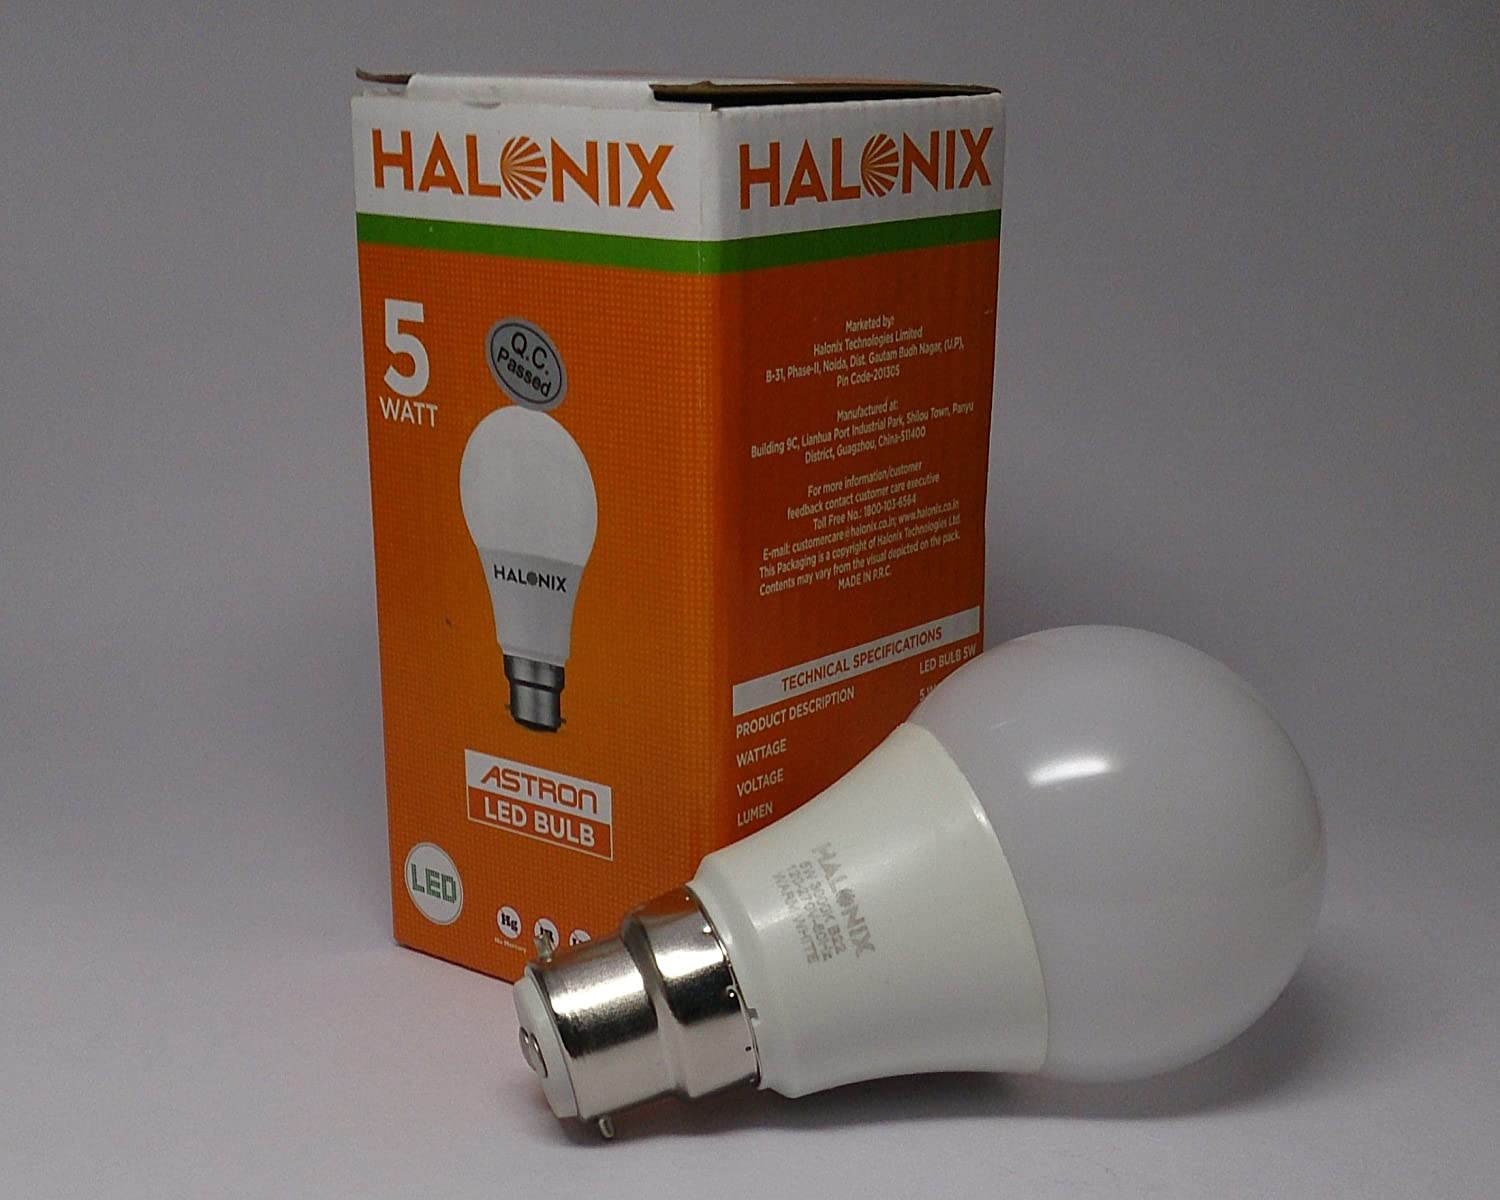 & Buy HALONIX 5W LED BULB Online at Low Prices in India - Amazon.in azcodes.com